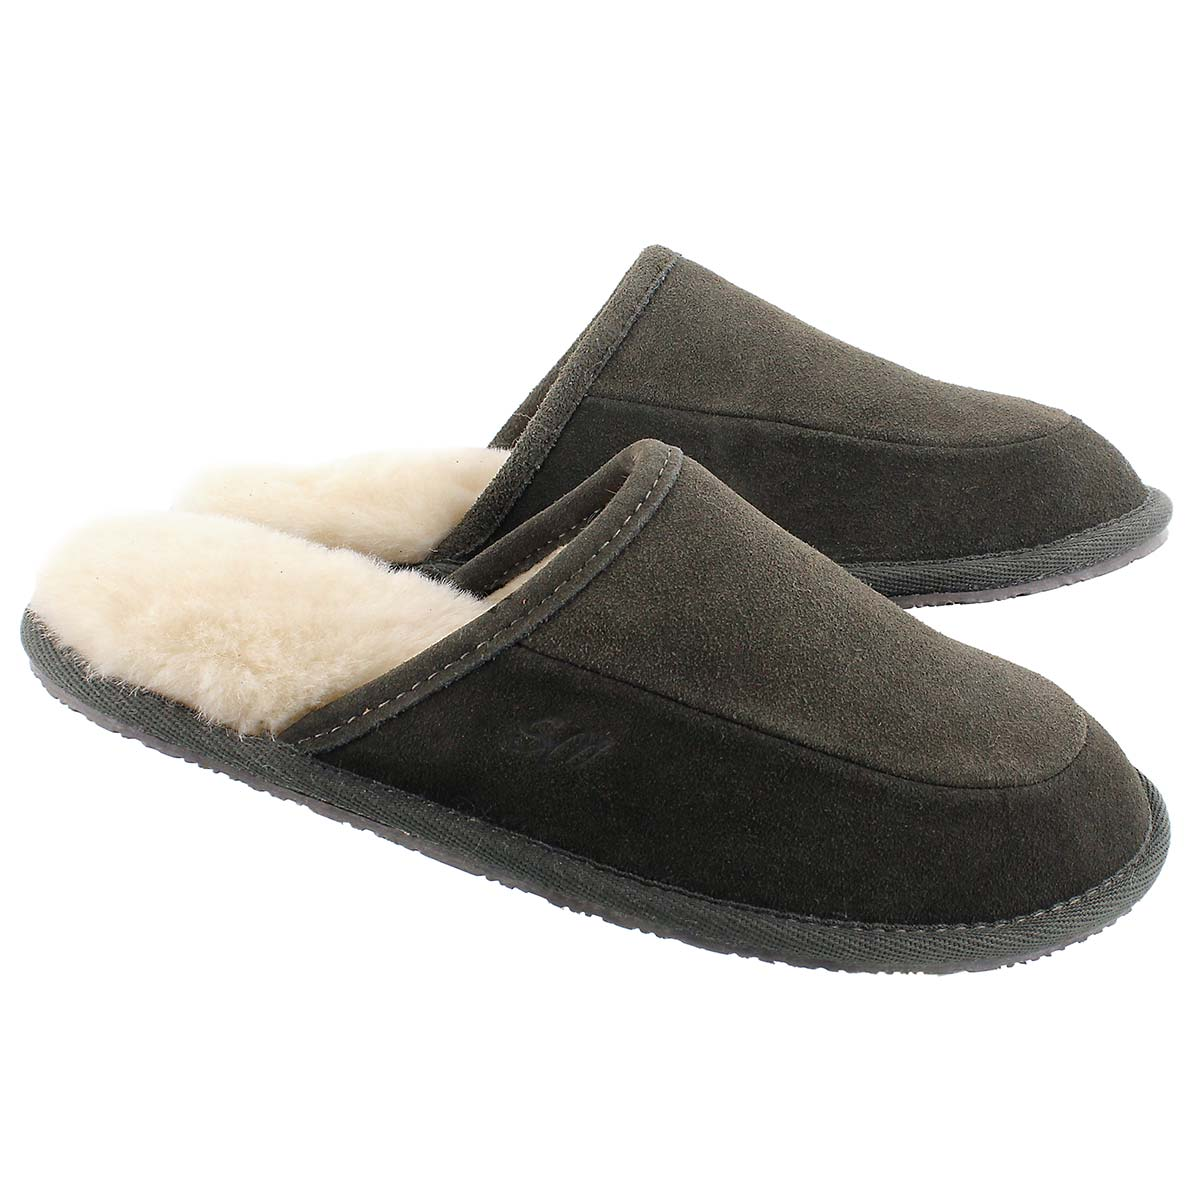 Mns Seth grey mem. foam slipper